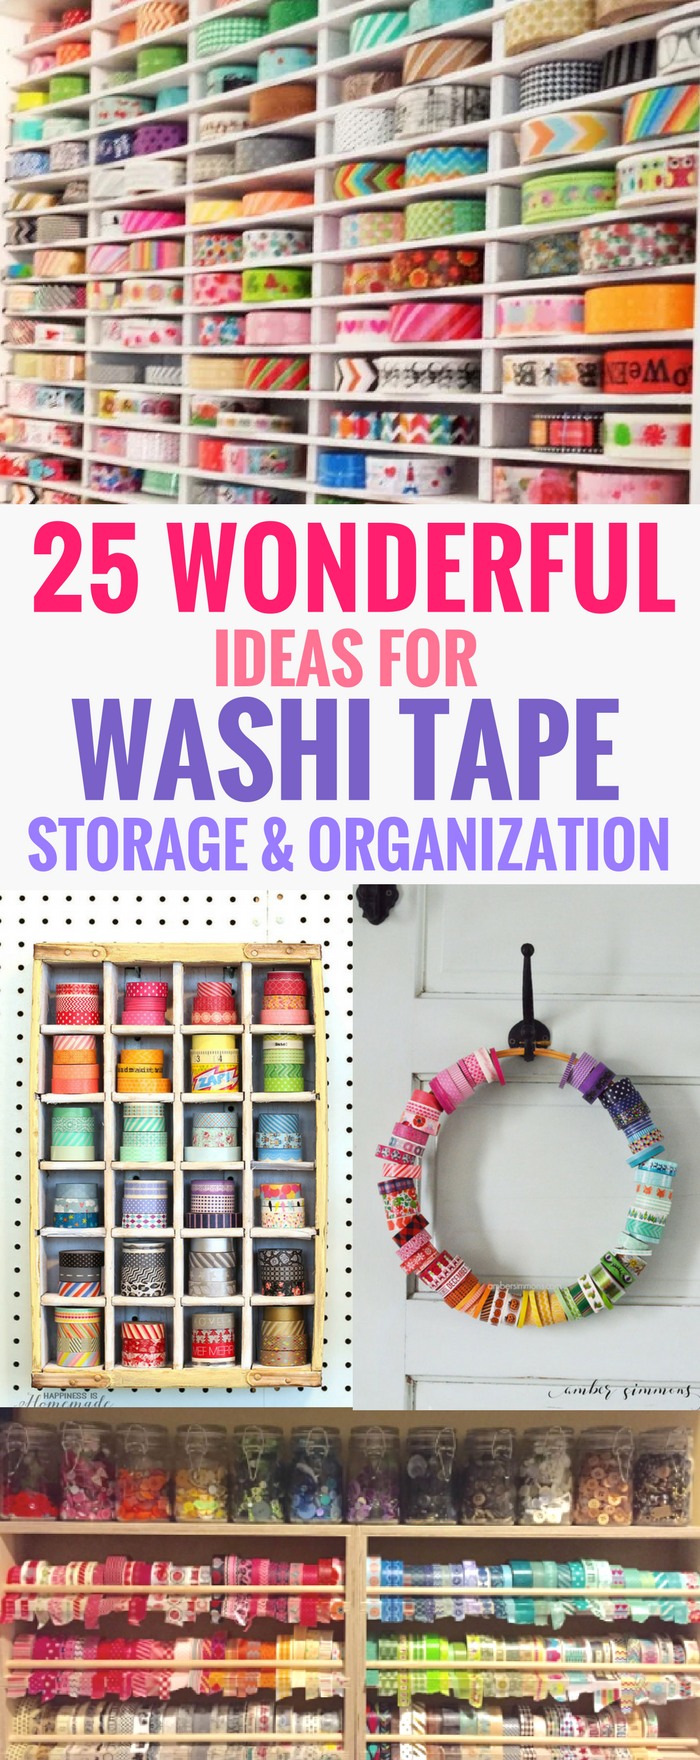 #washitape #crafts #planner Ideas for Washi Tape Storage and Organization, Crafts, Decor, Cards, Journal